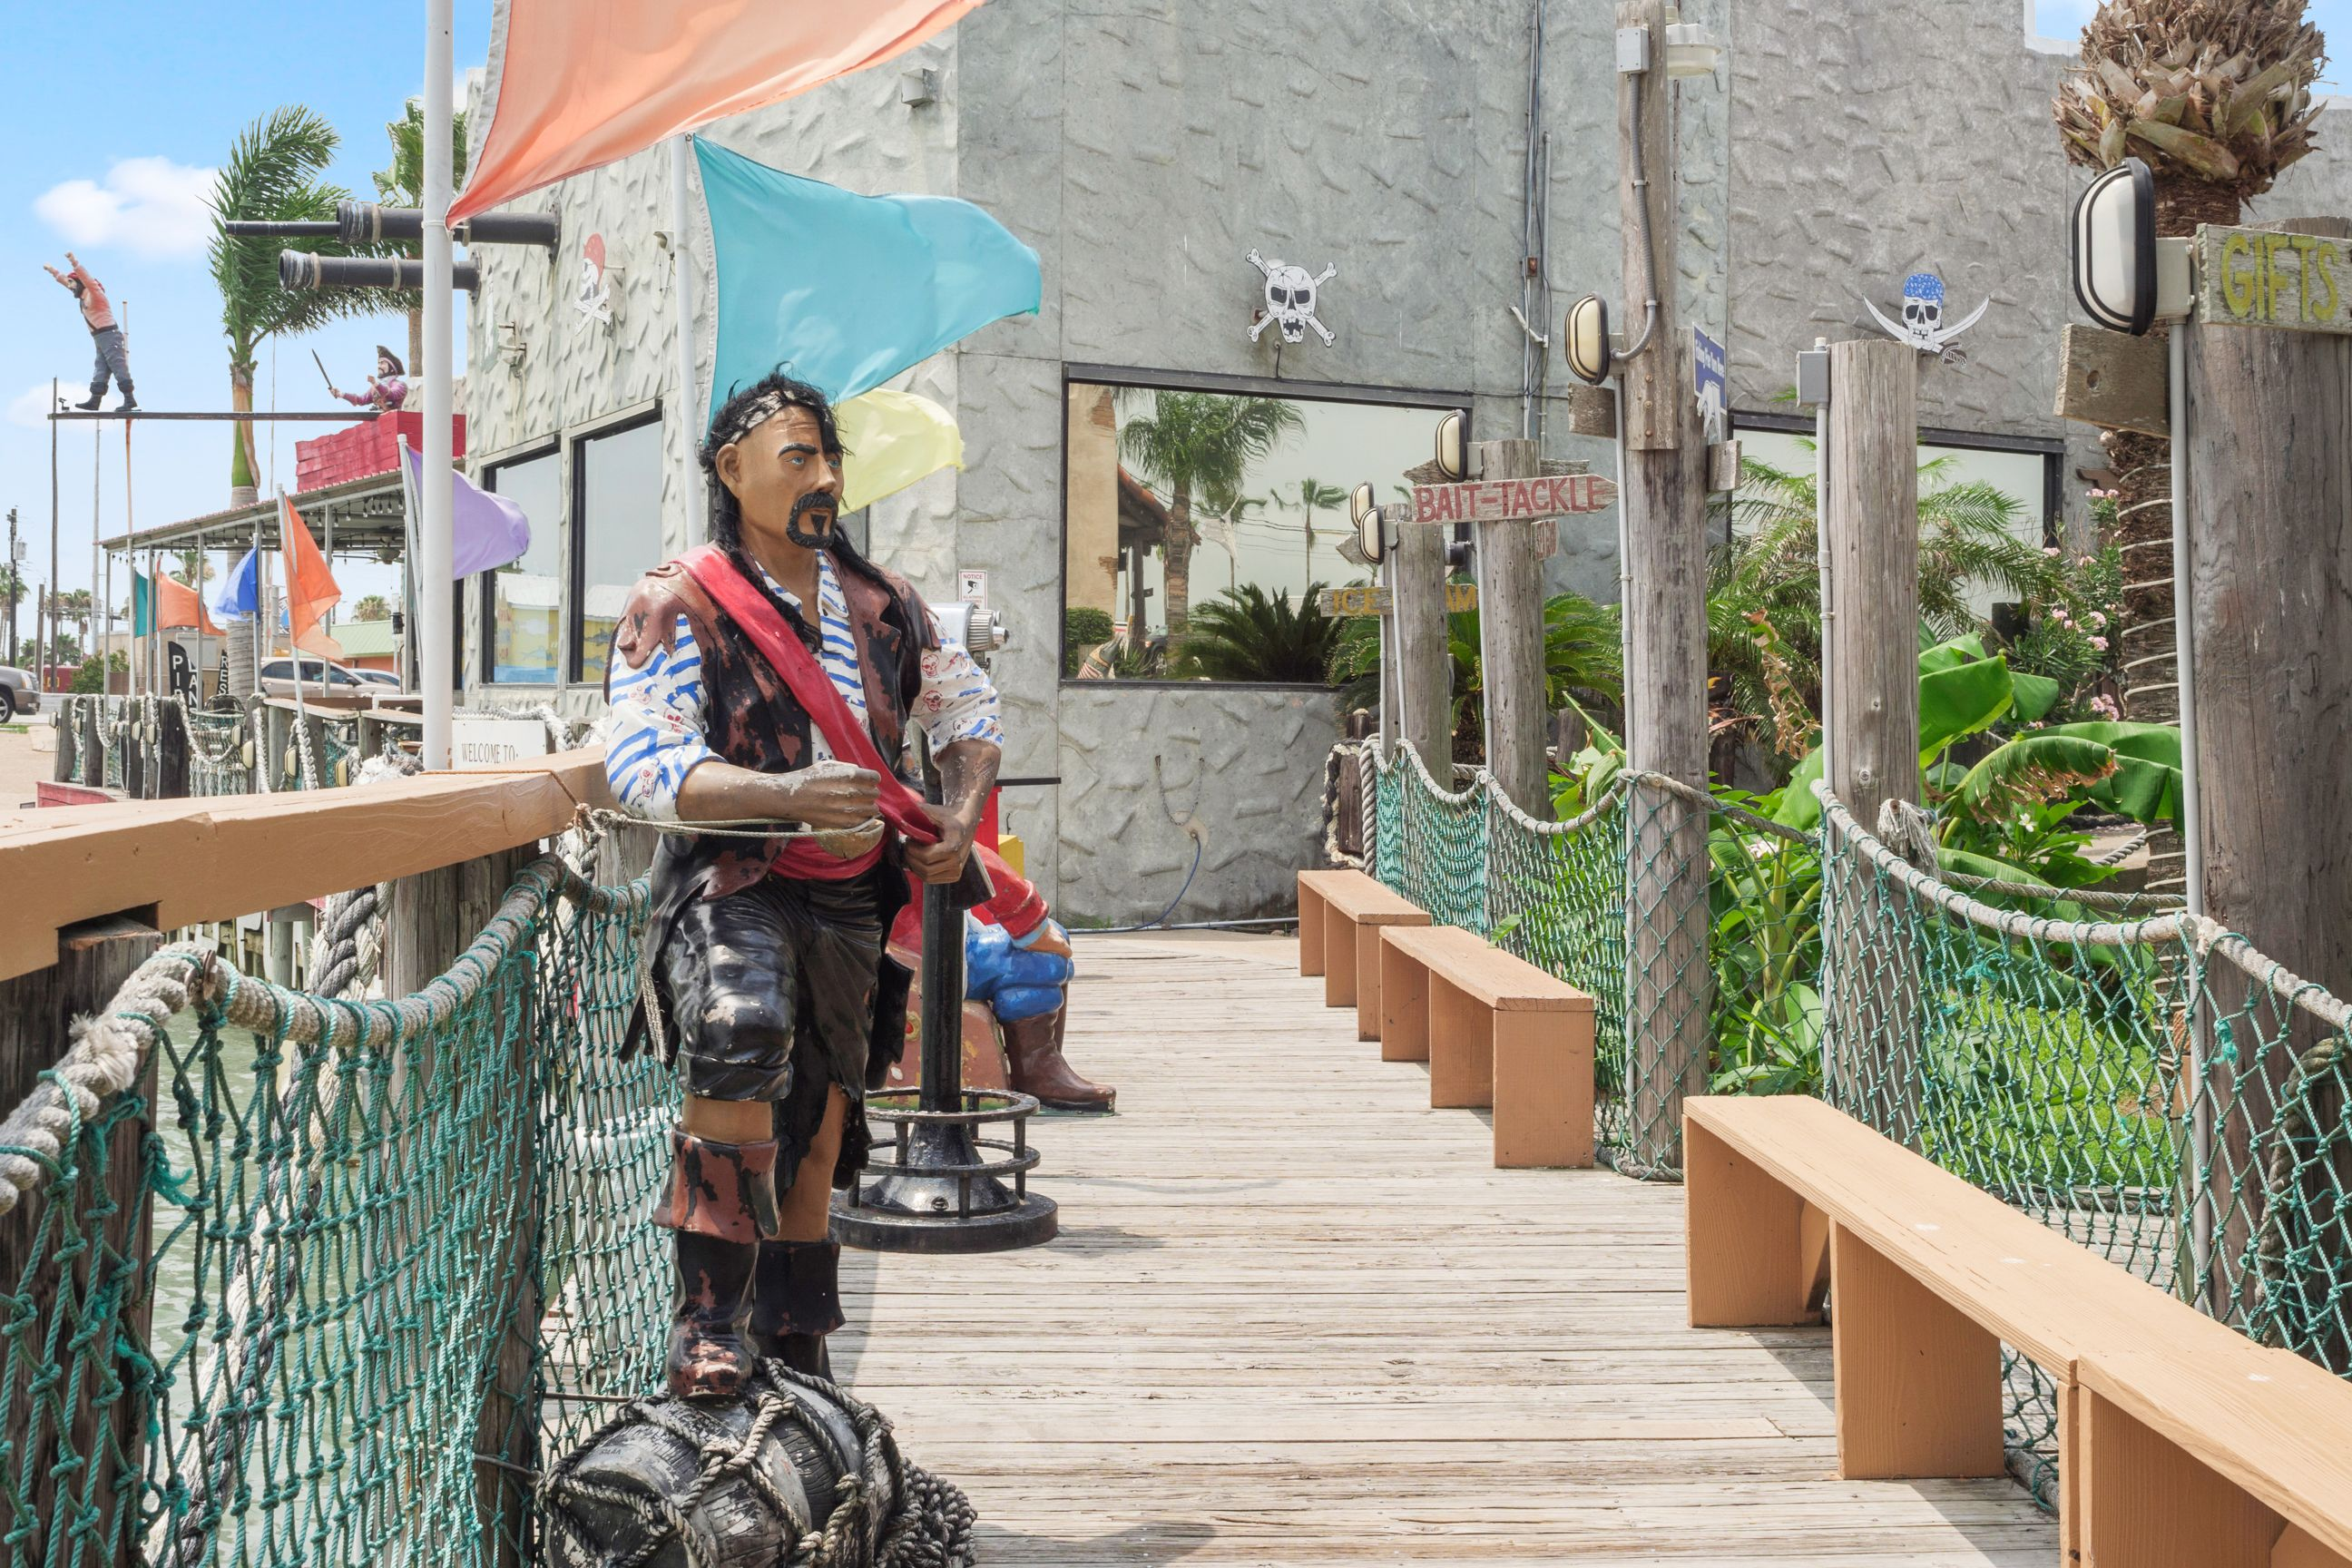 boardwalk leading into the restaurant with a Pirate statue